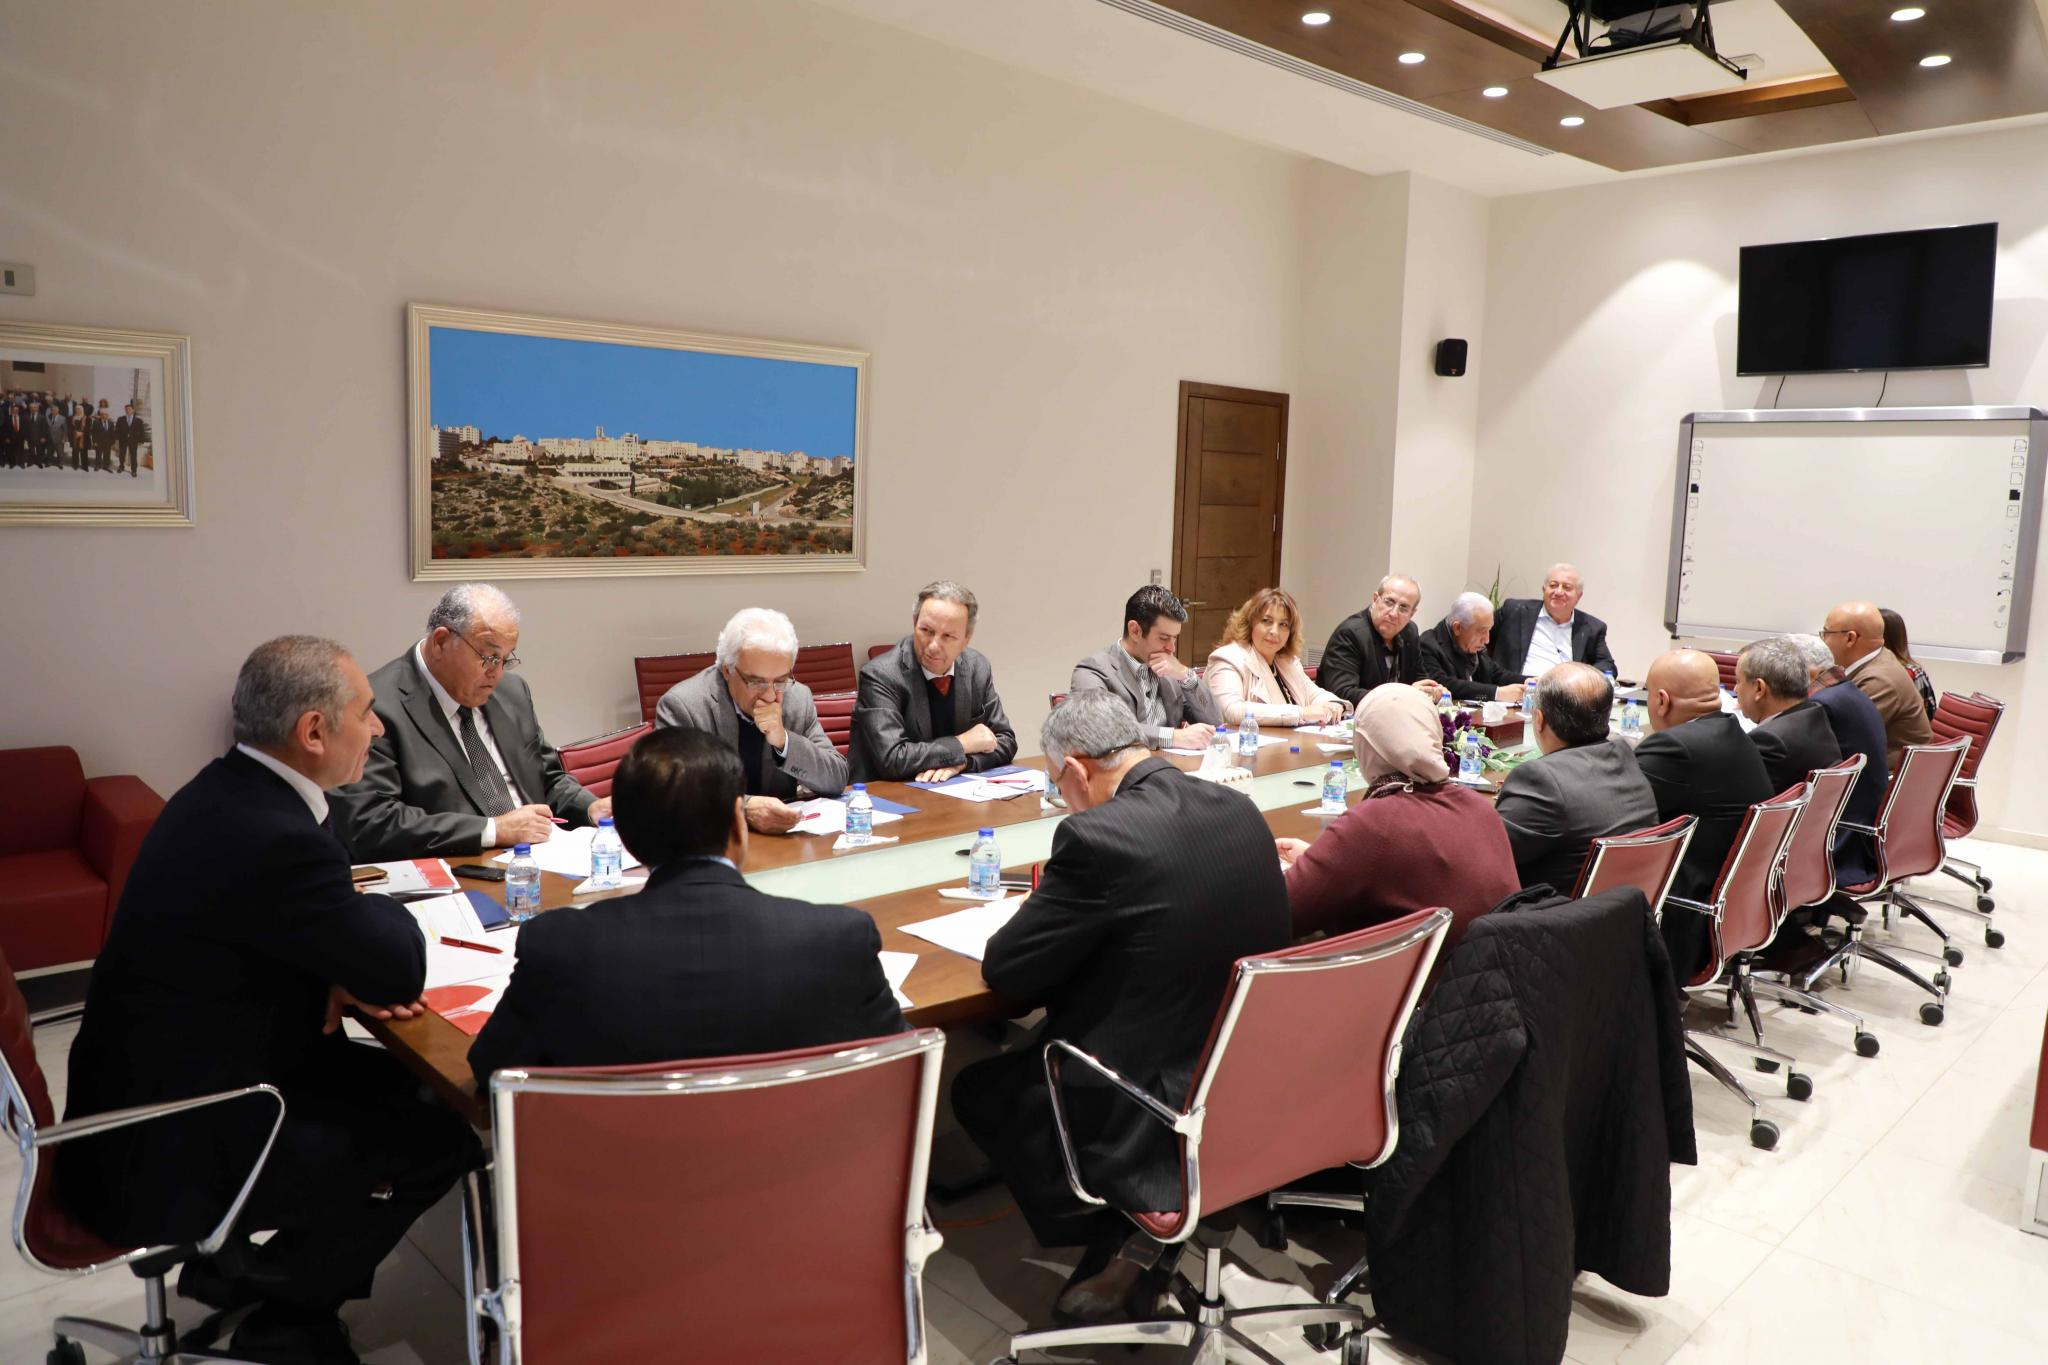 Board of Trustees at the University Discusses Developing Quality Academic Programs